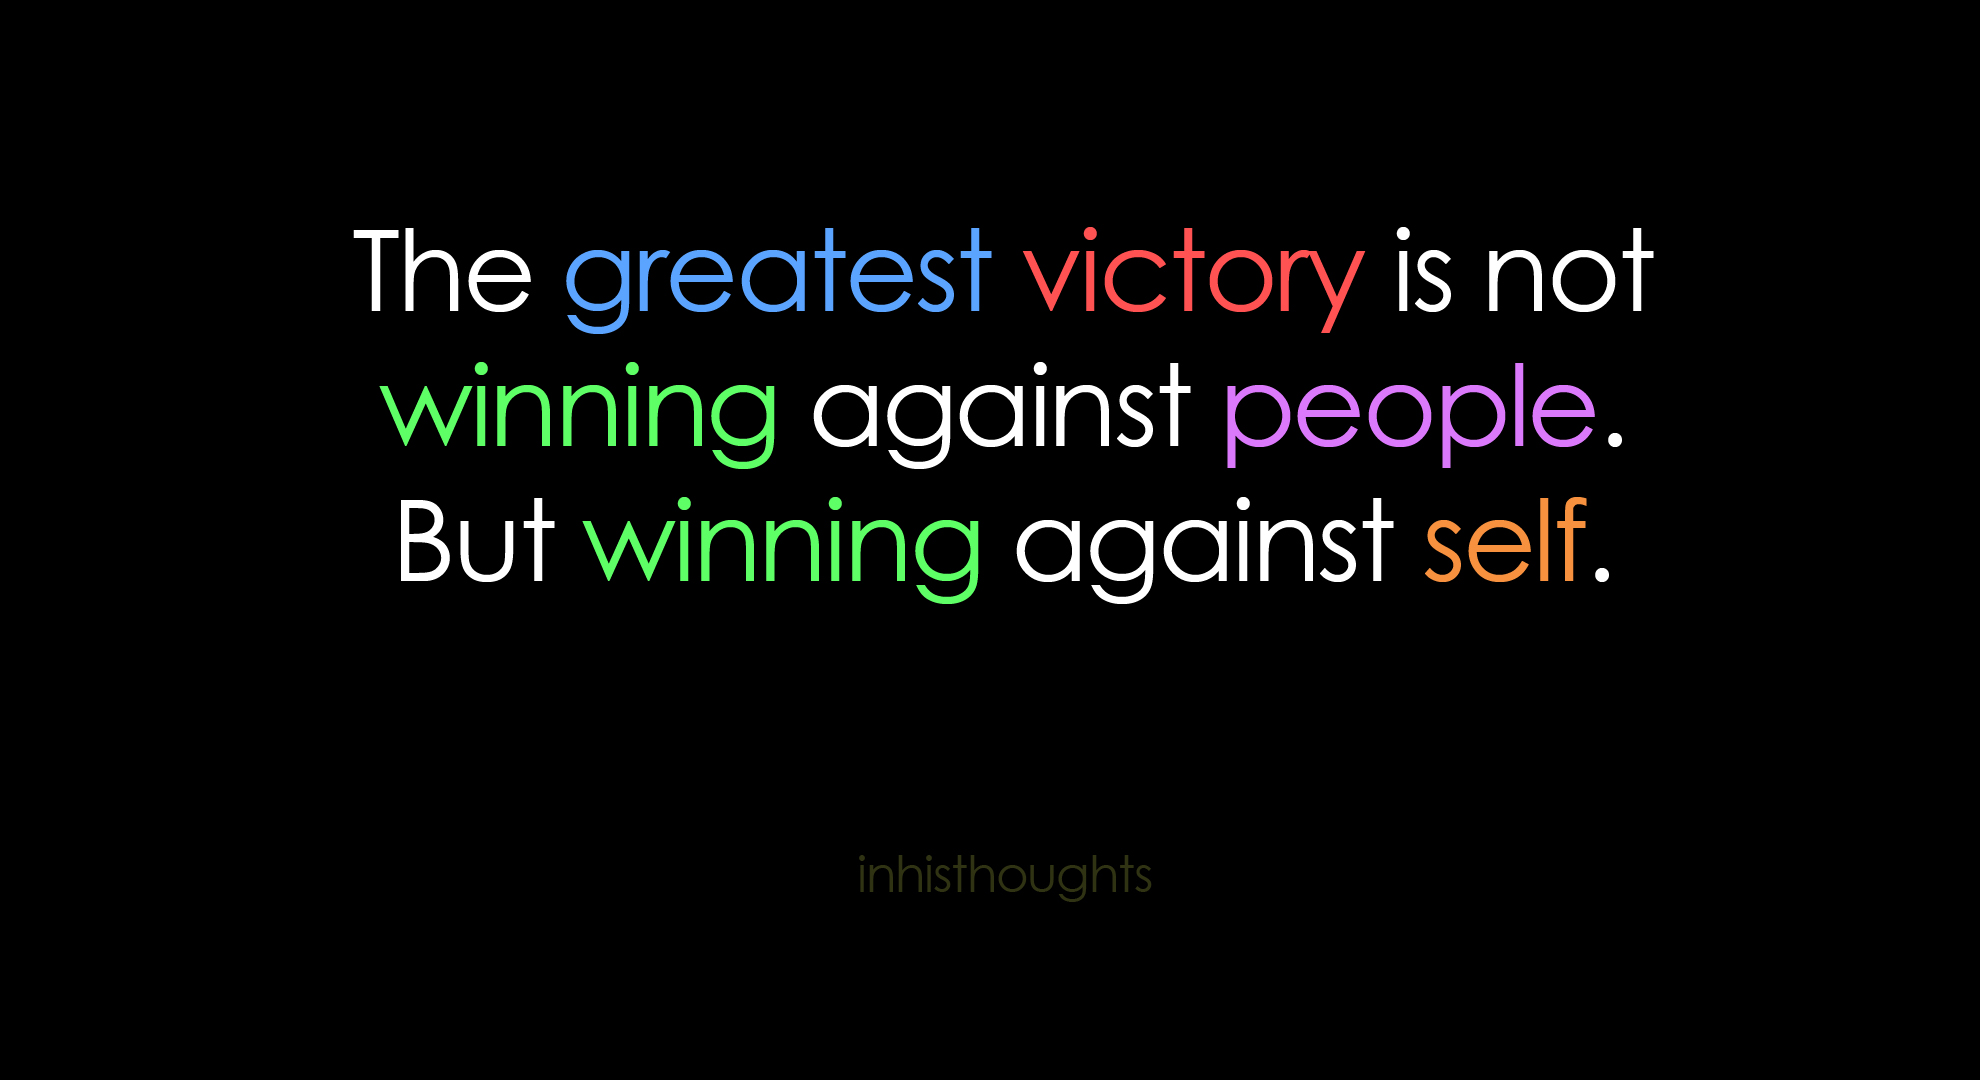 The Greatest Victory Is Not Winning Against People, But Winning Against Self